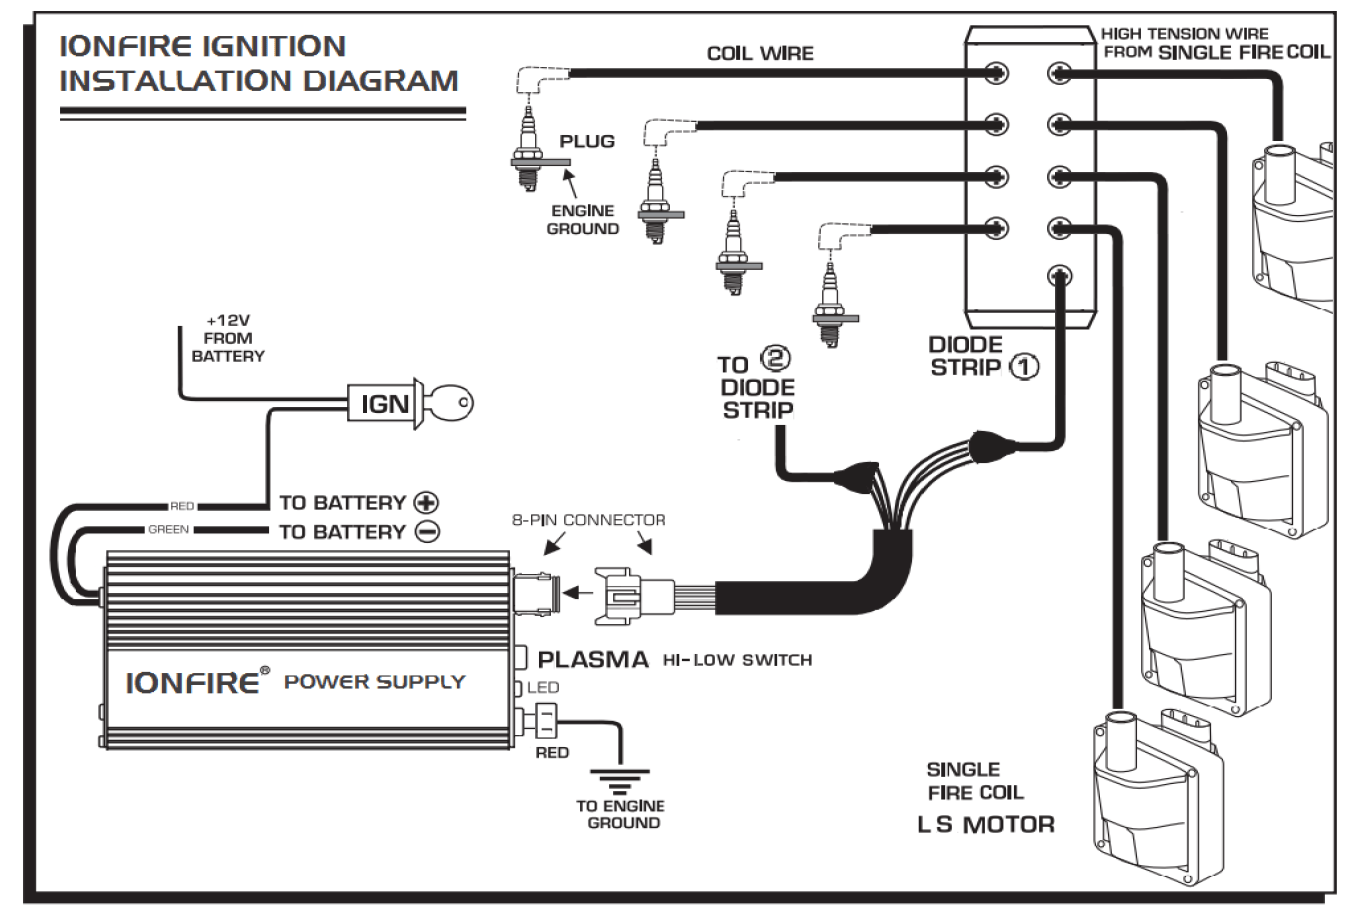 hight resolution of ionfire single fire ignition install schematic